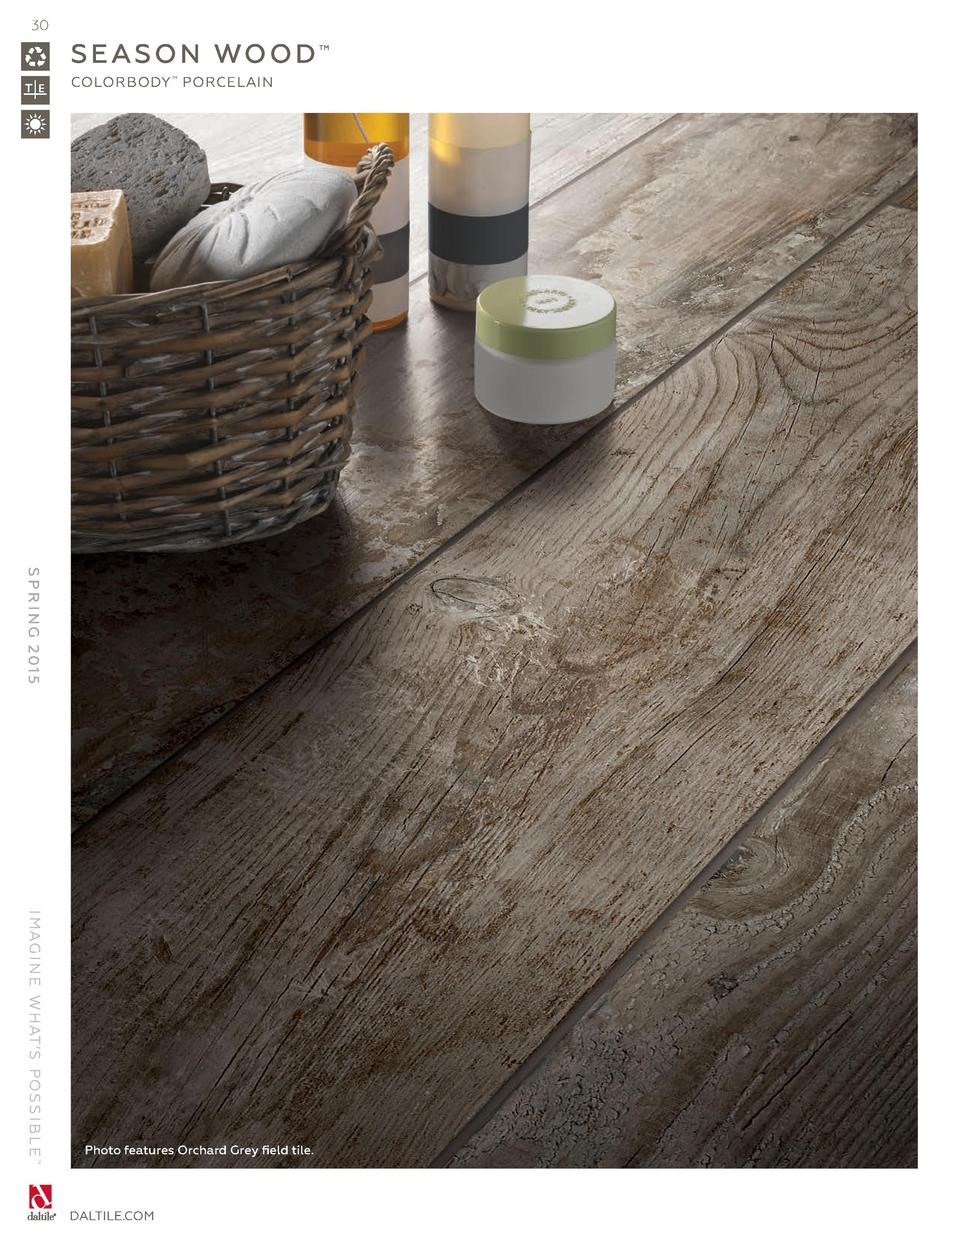 Hardwood Floor Repair Nashville Tn Of Daltile Spring 2015 Catalog Simplebooklet Com with 30 S E A S O N Wo O D Colorbody Porcelain S P R I N G 2 01 5 I Mag I N E W Hat S Po